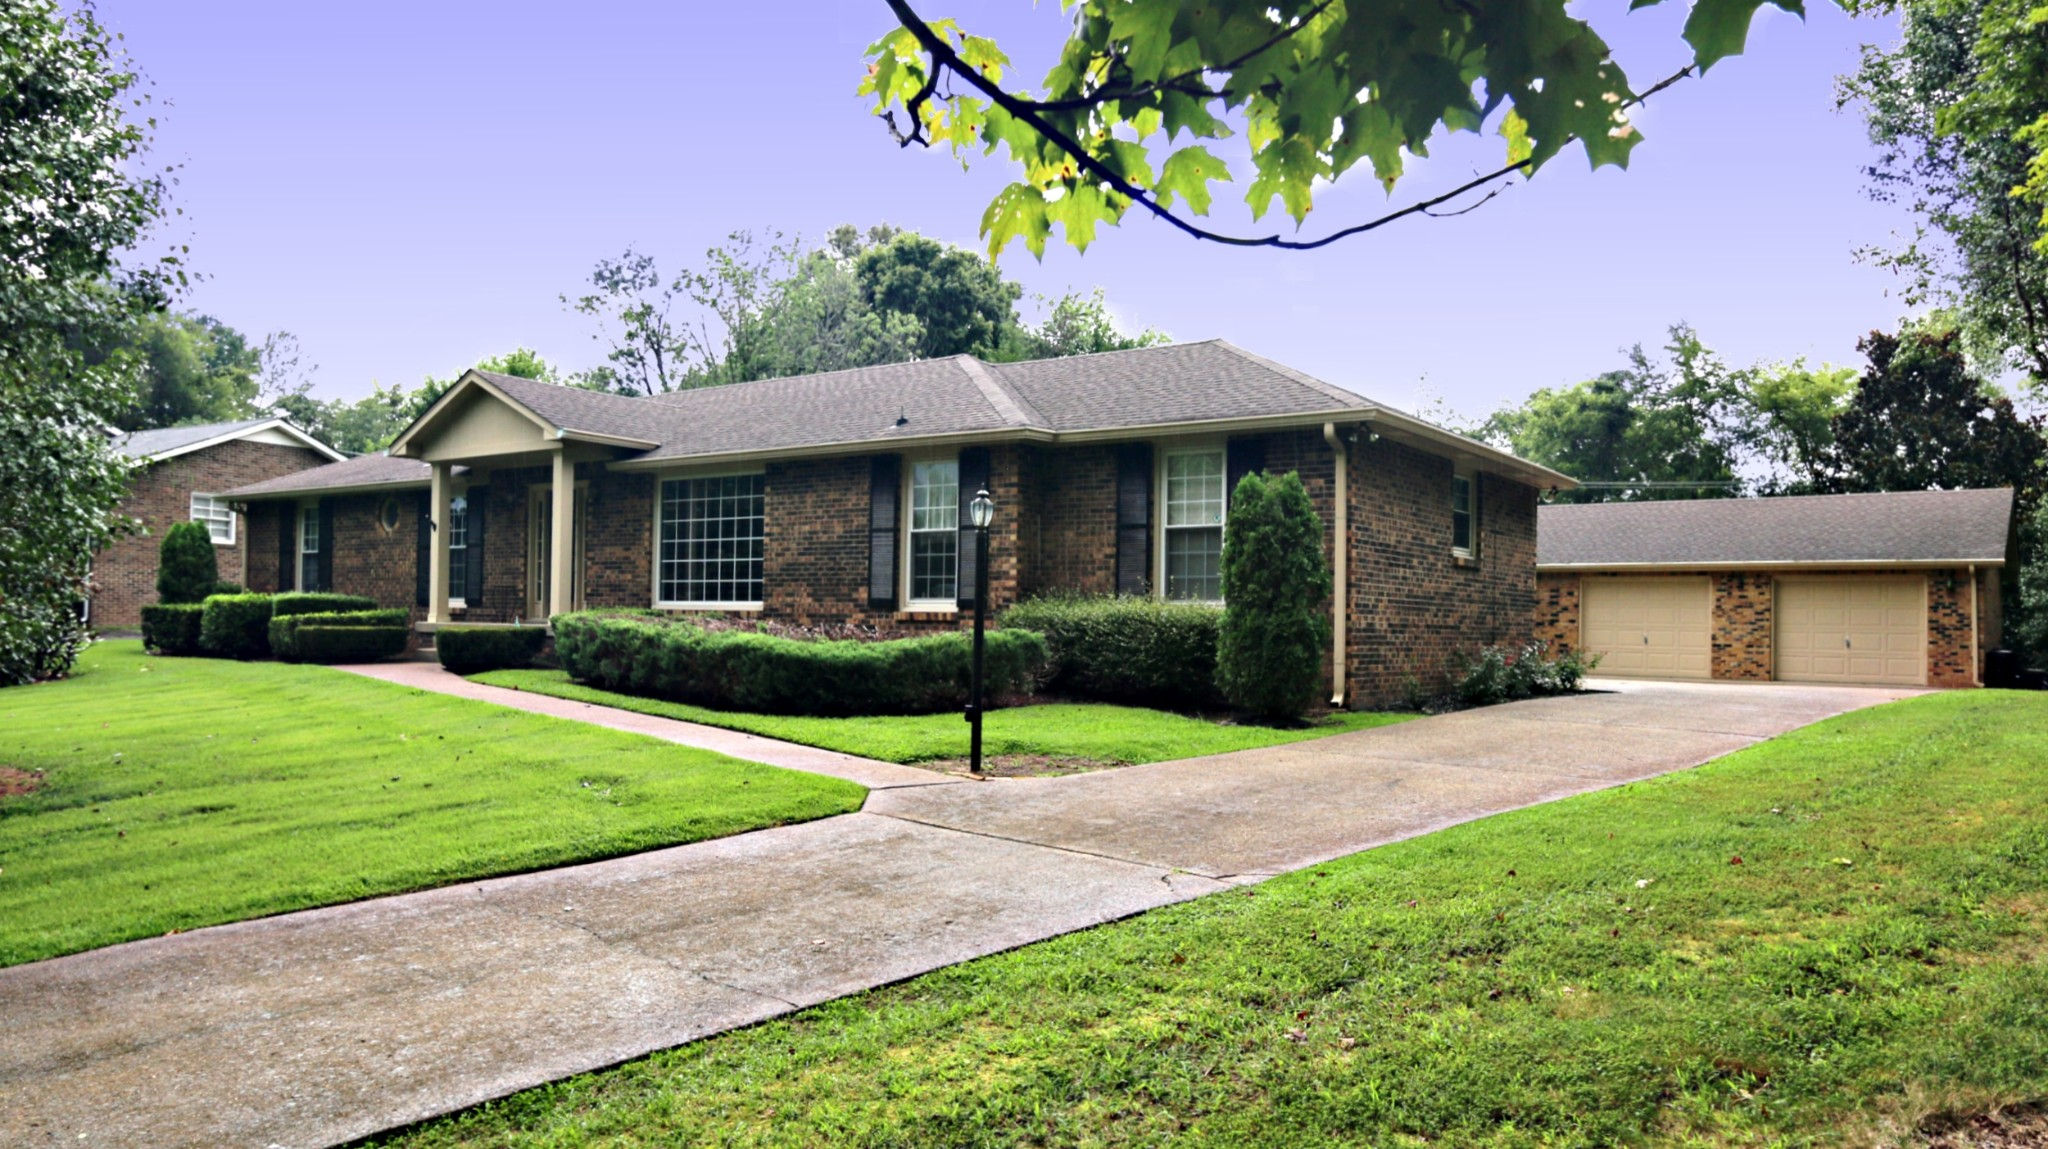 339 Kimbrough Rd Property Photo - Clarksville, TN real estate listing